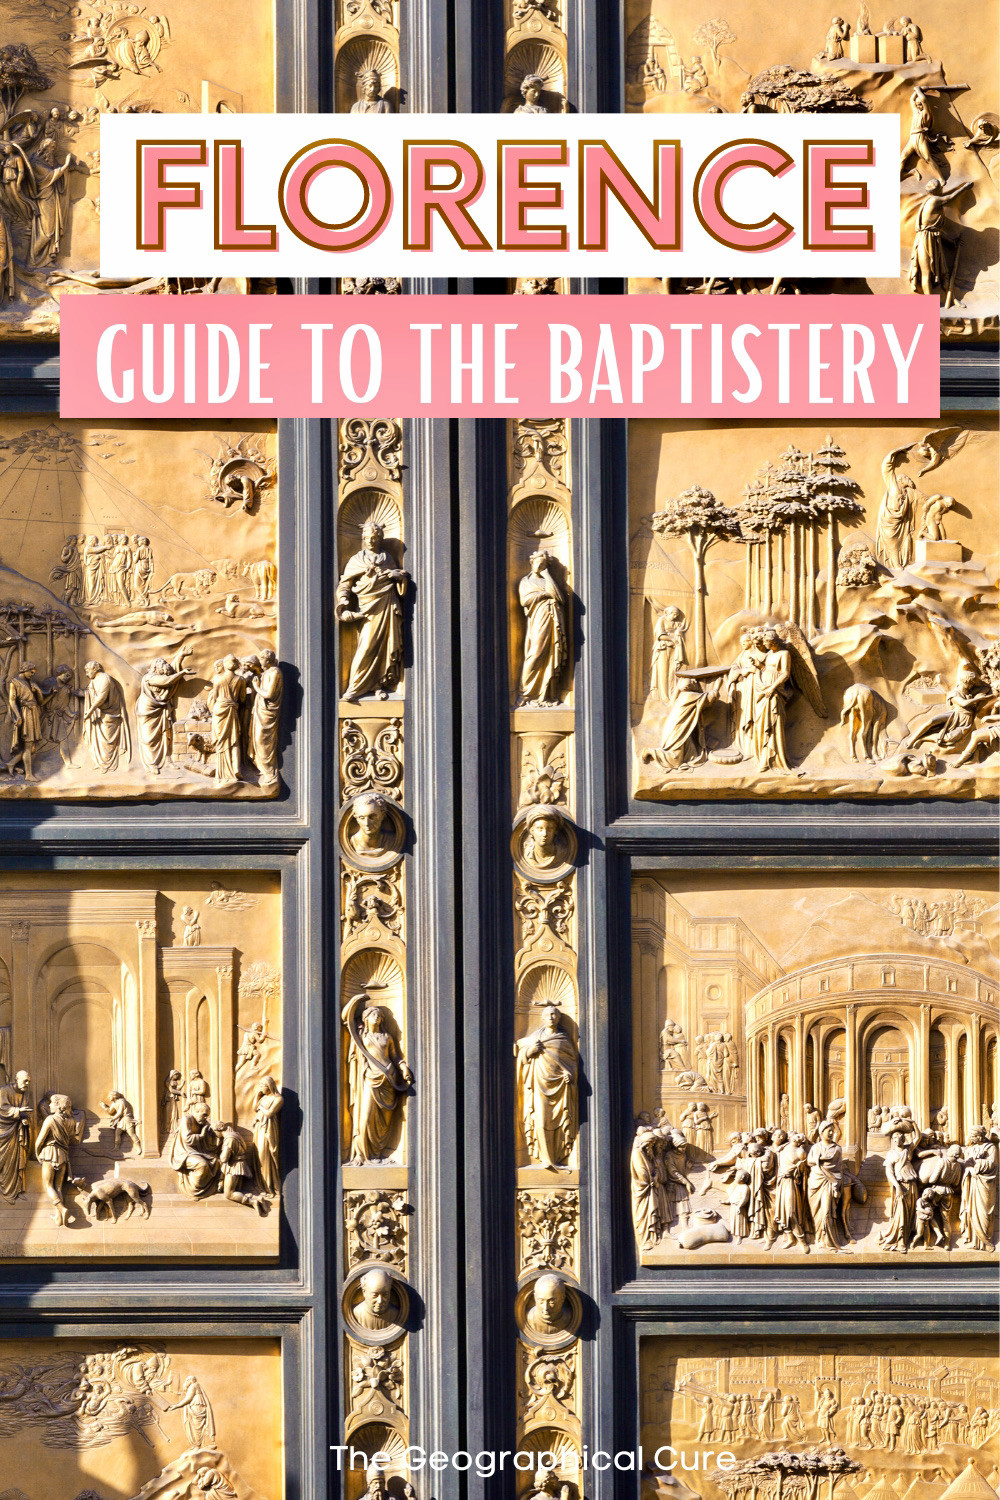 guide to the Baptistery of St. John, a must see site in Florence Italy